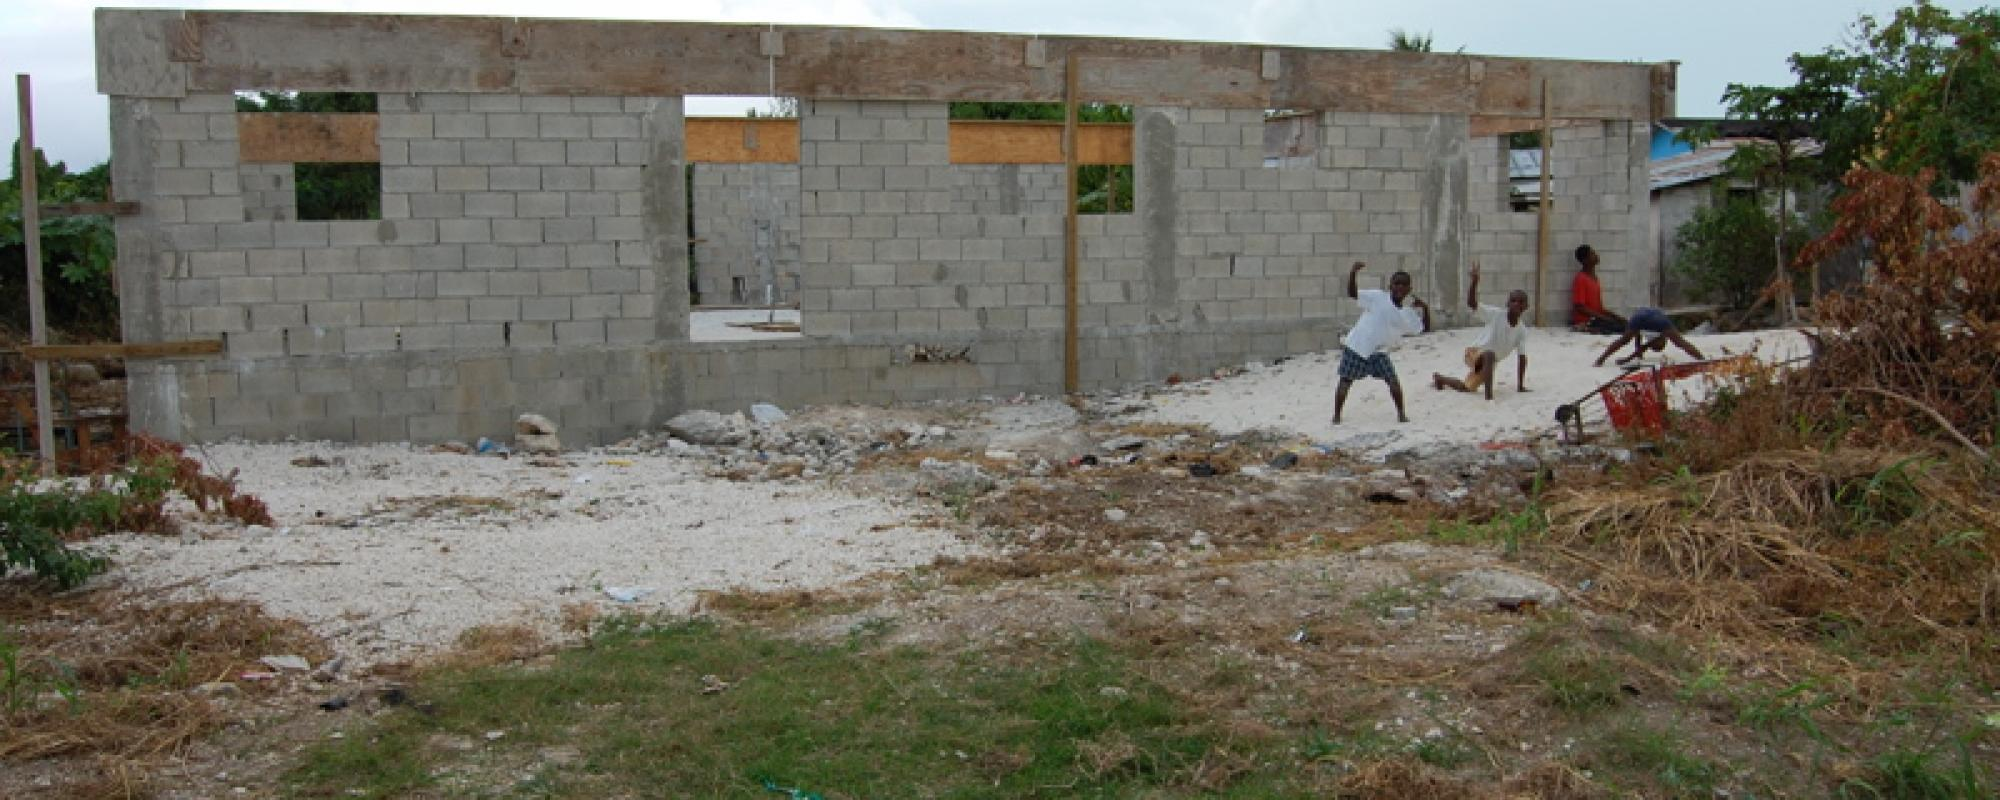 children happy in front of a work project for a building in progress